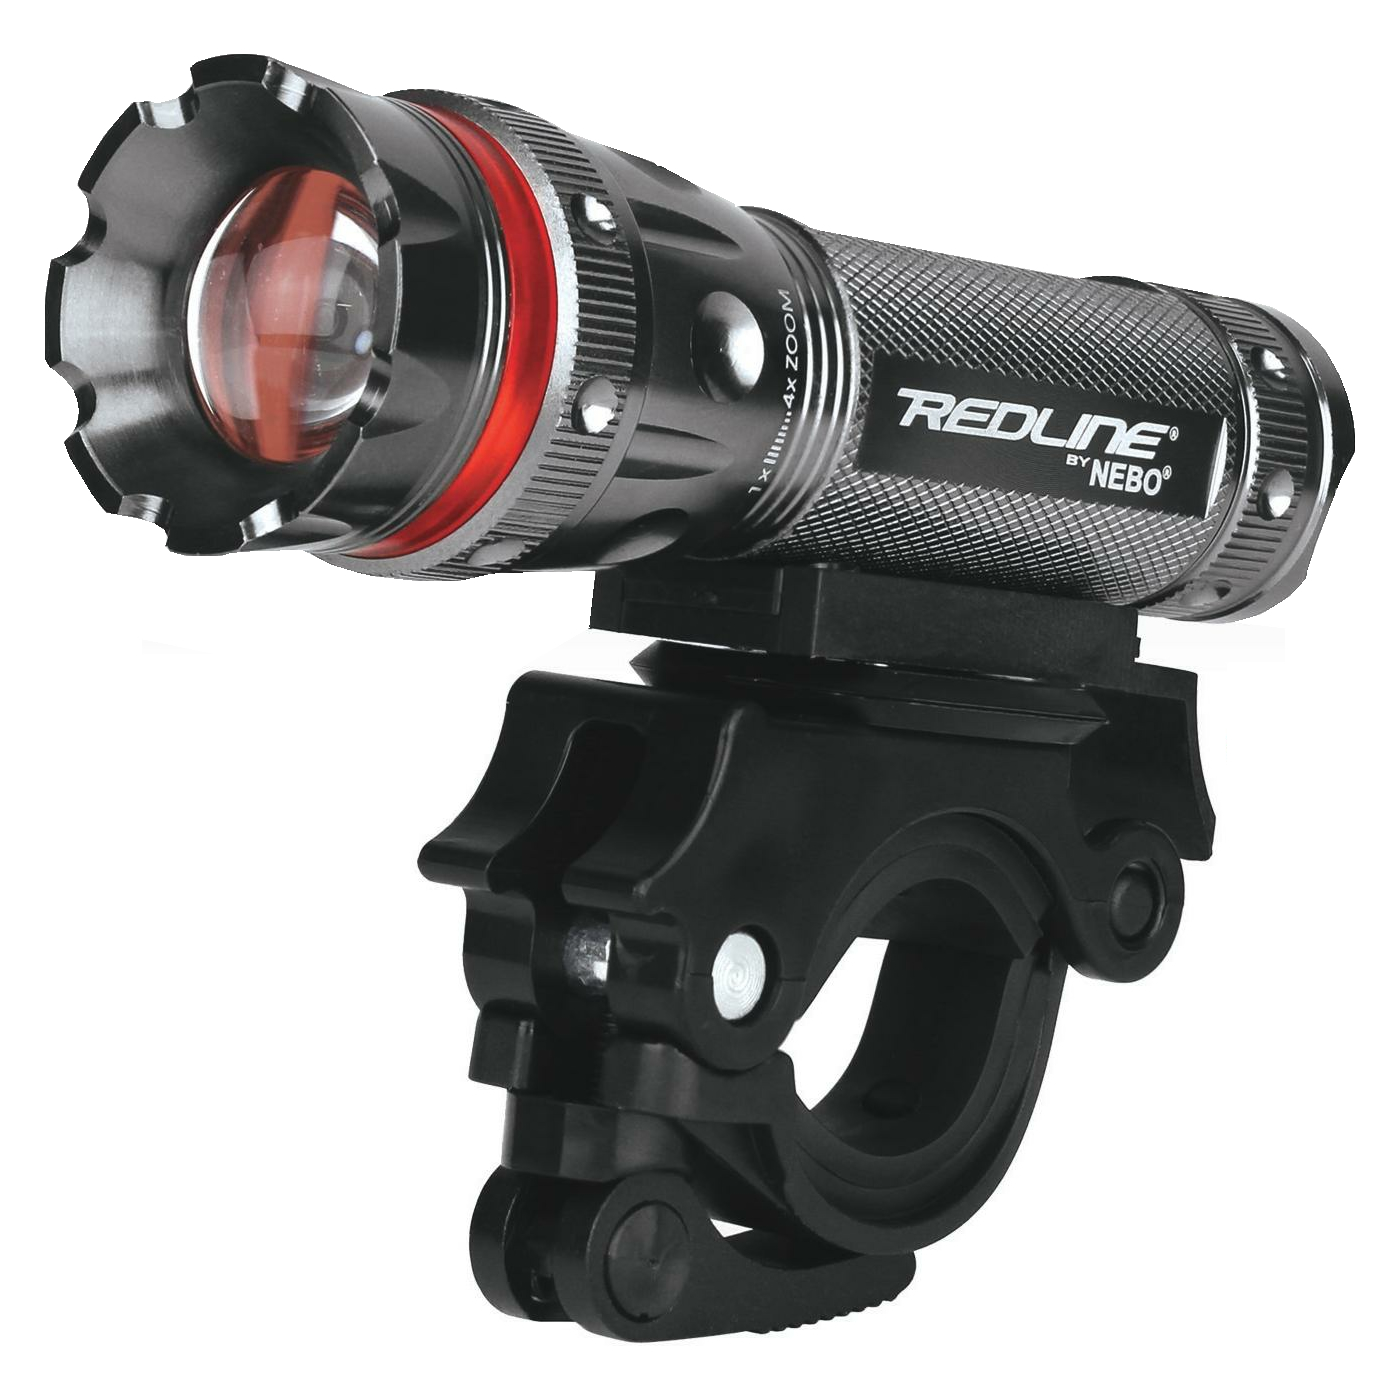 Refurbished Nebo Redline 220 Lumens LED Bike Light 4x Adjustable Beam - 180° Swivel